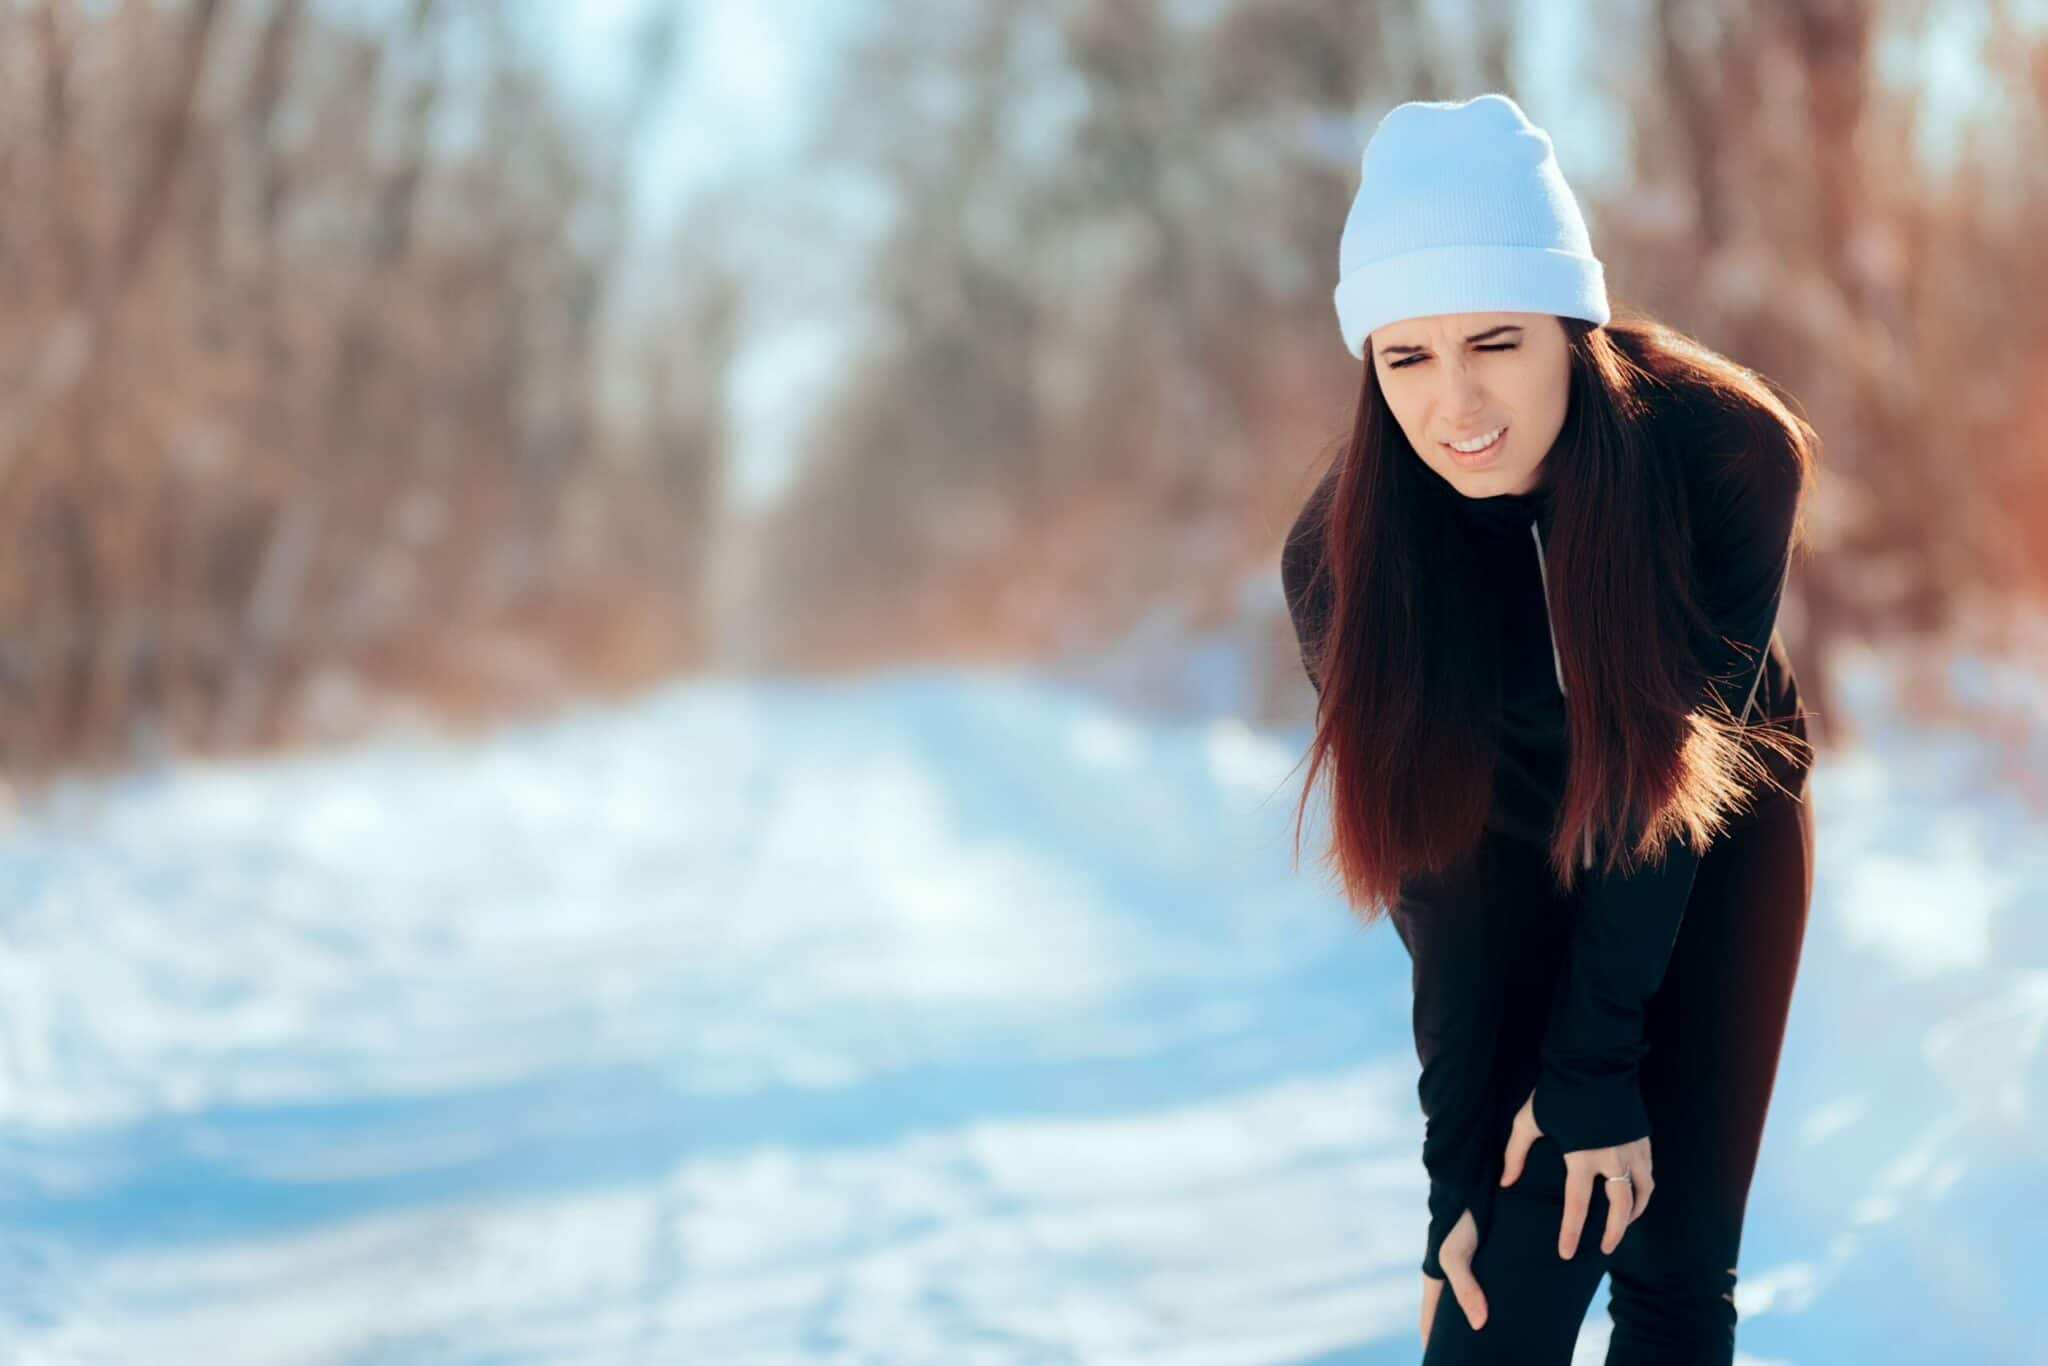 what are some Lesser-Known Winter Health Problems